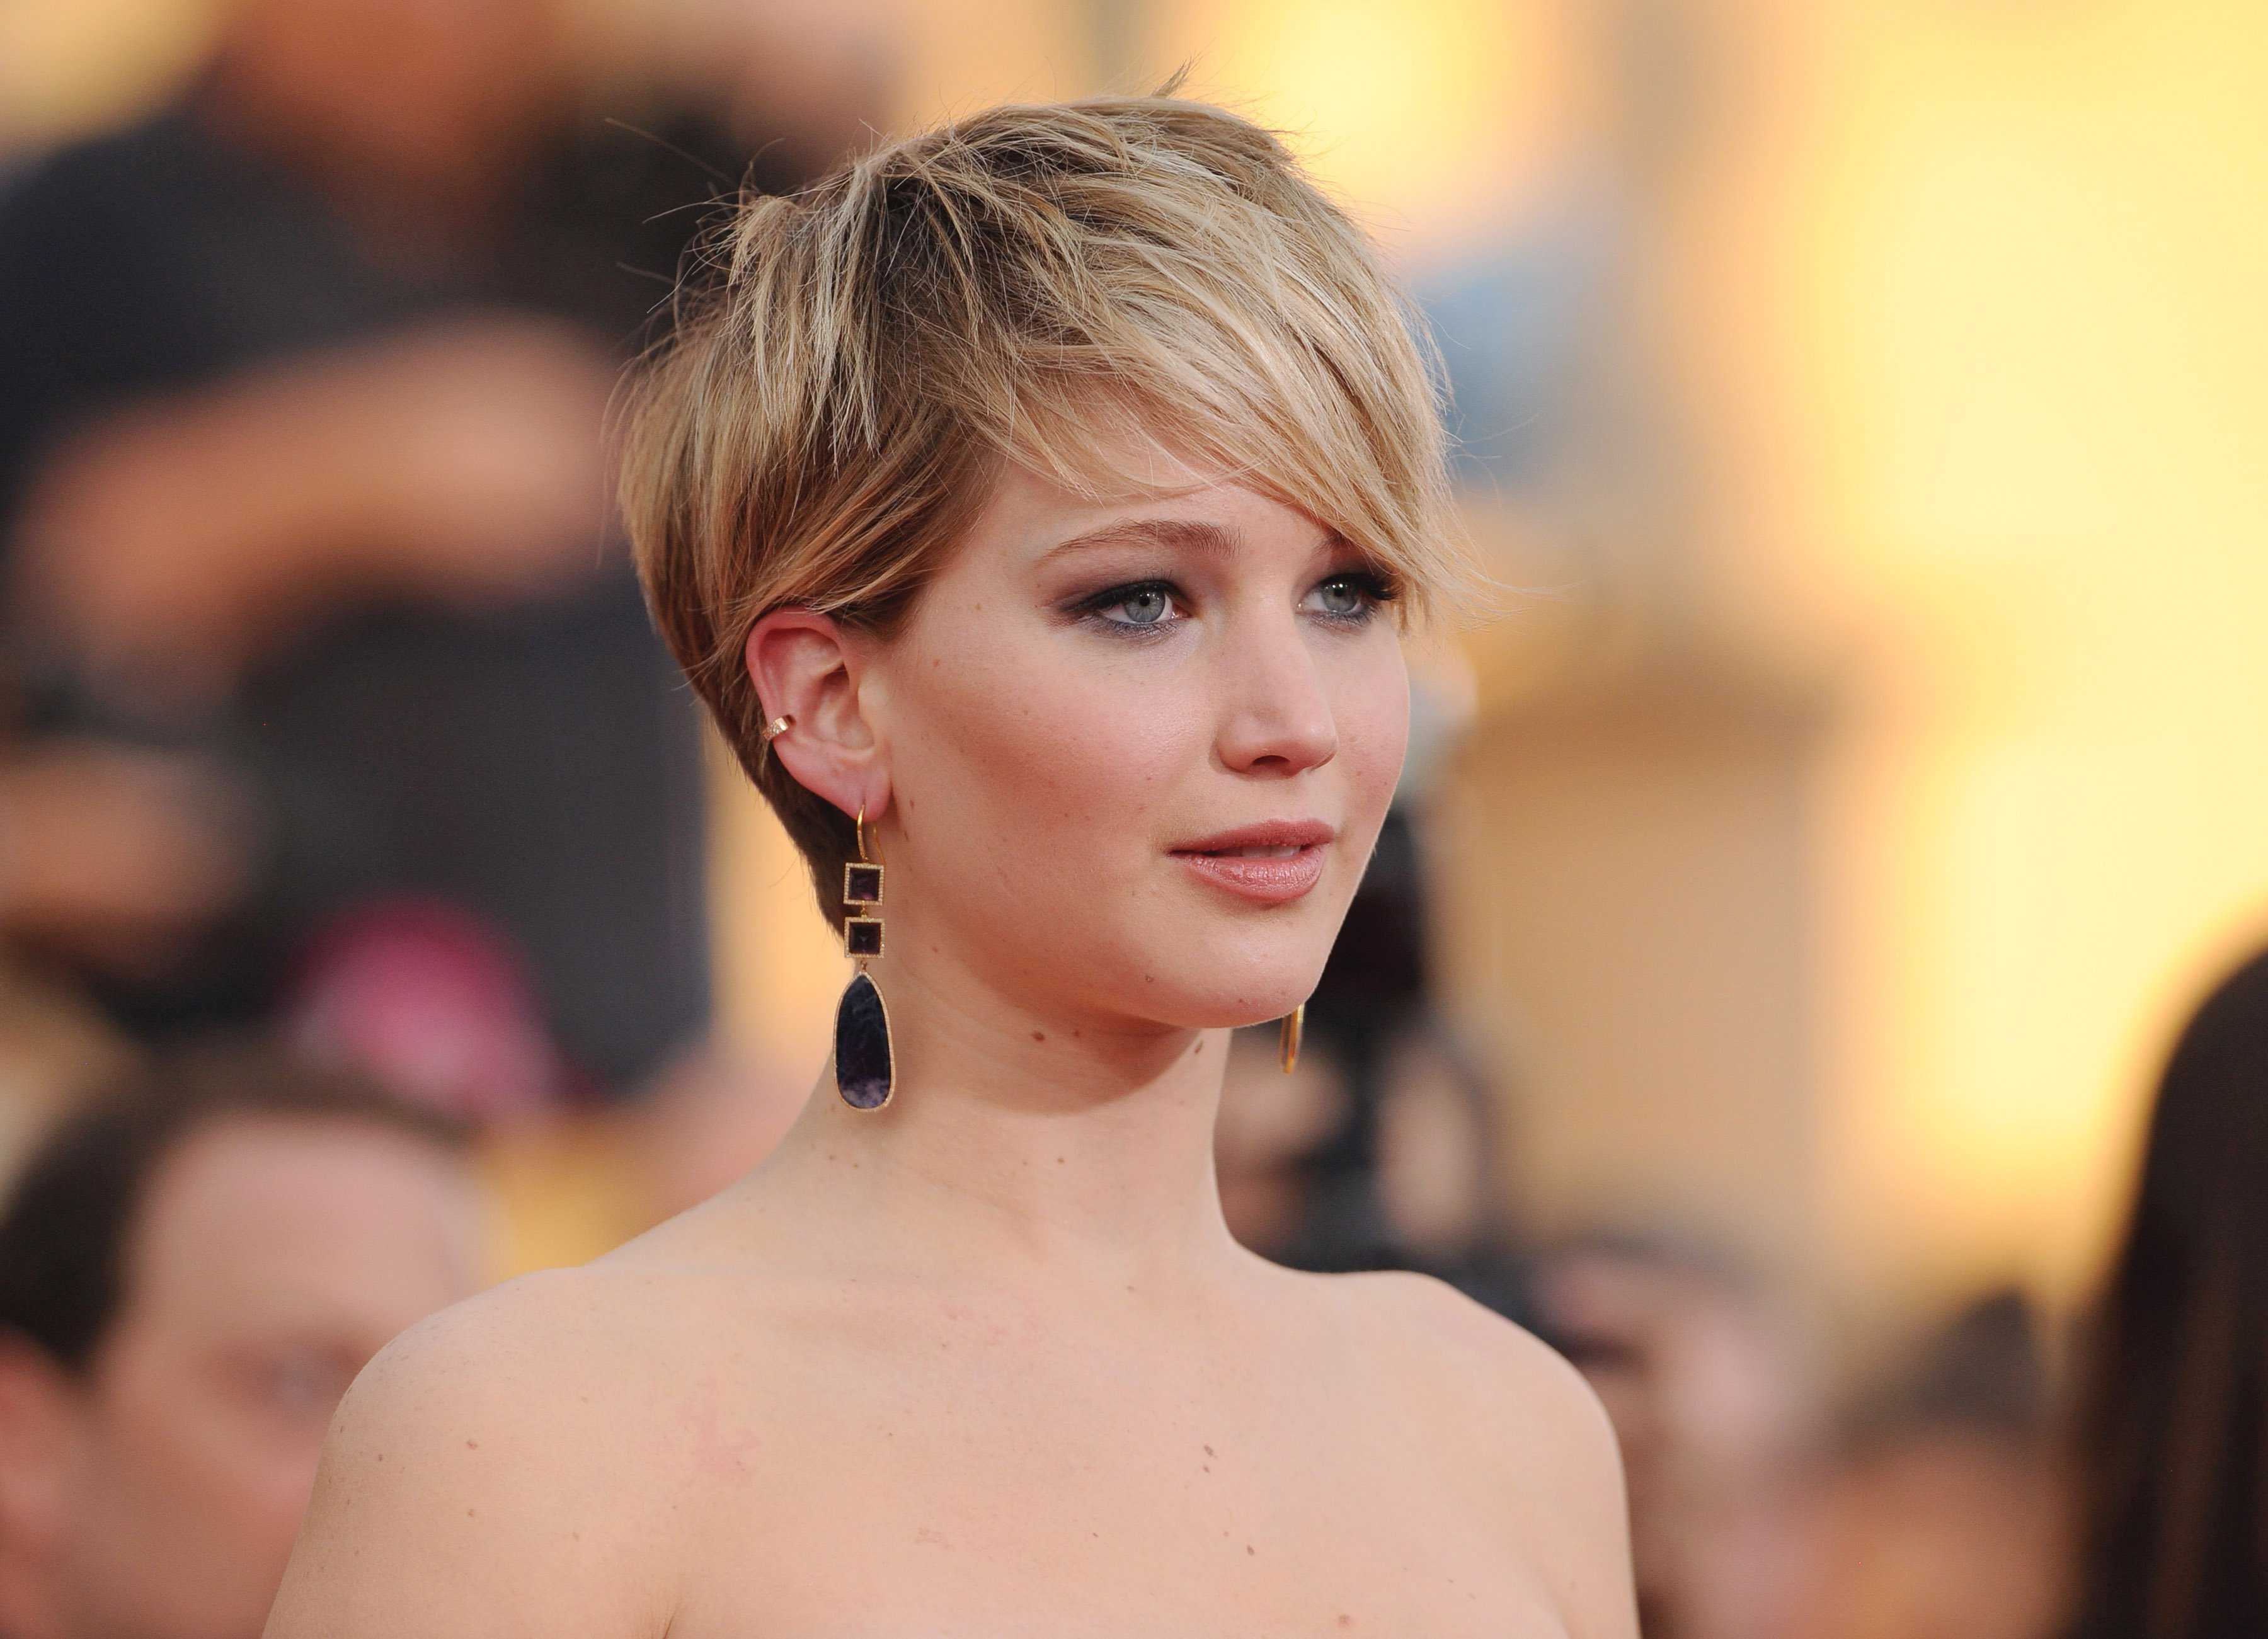 35 Fabulous Short Haircuts For Thick Hair Within Edgy Short Haircuts For Thick Hair (View 18 of 25)